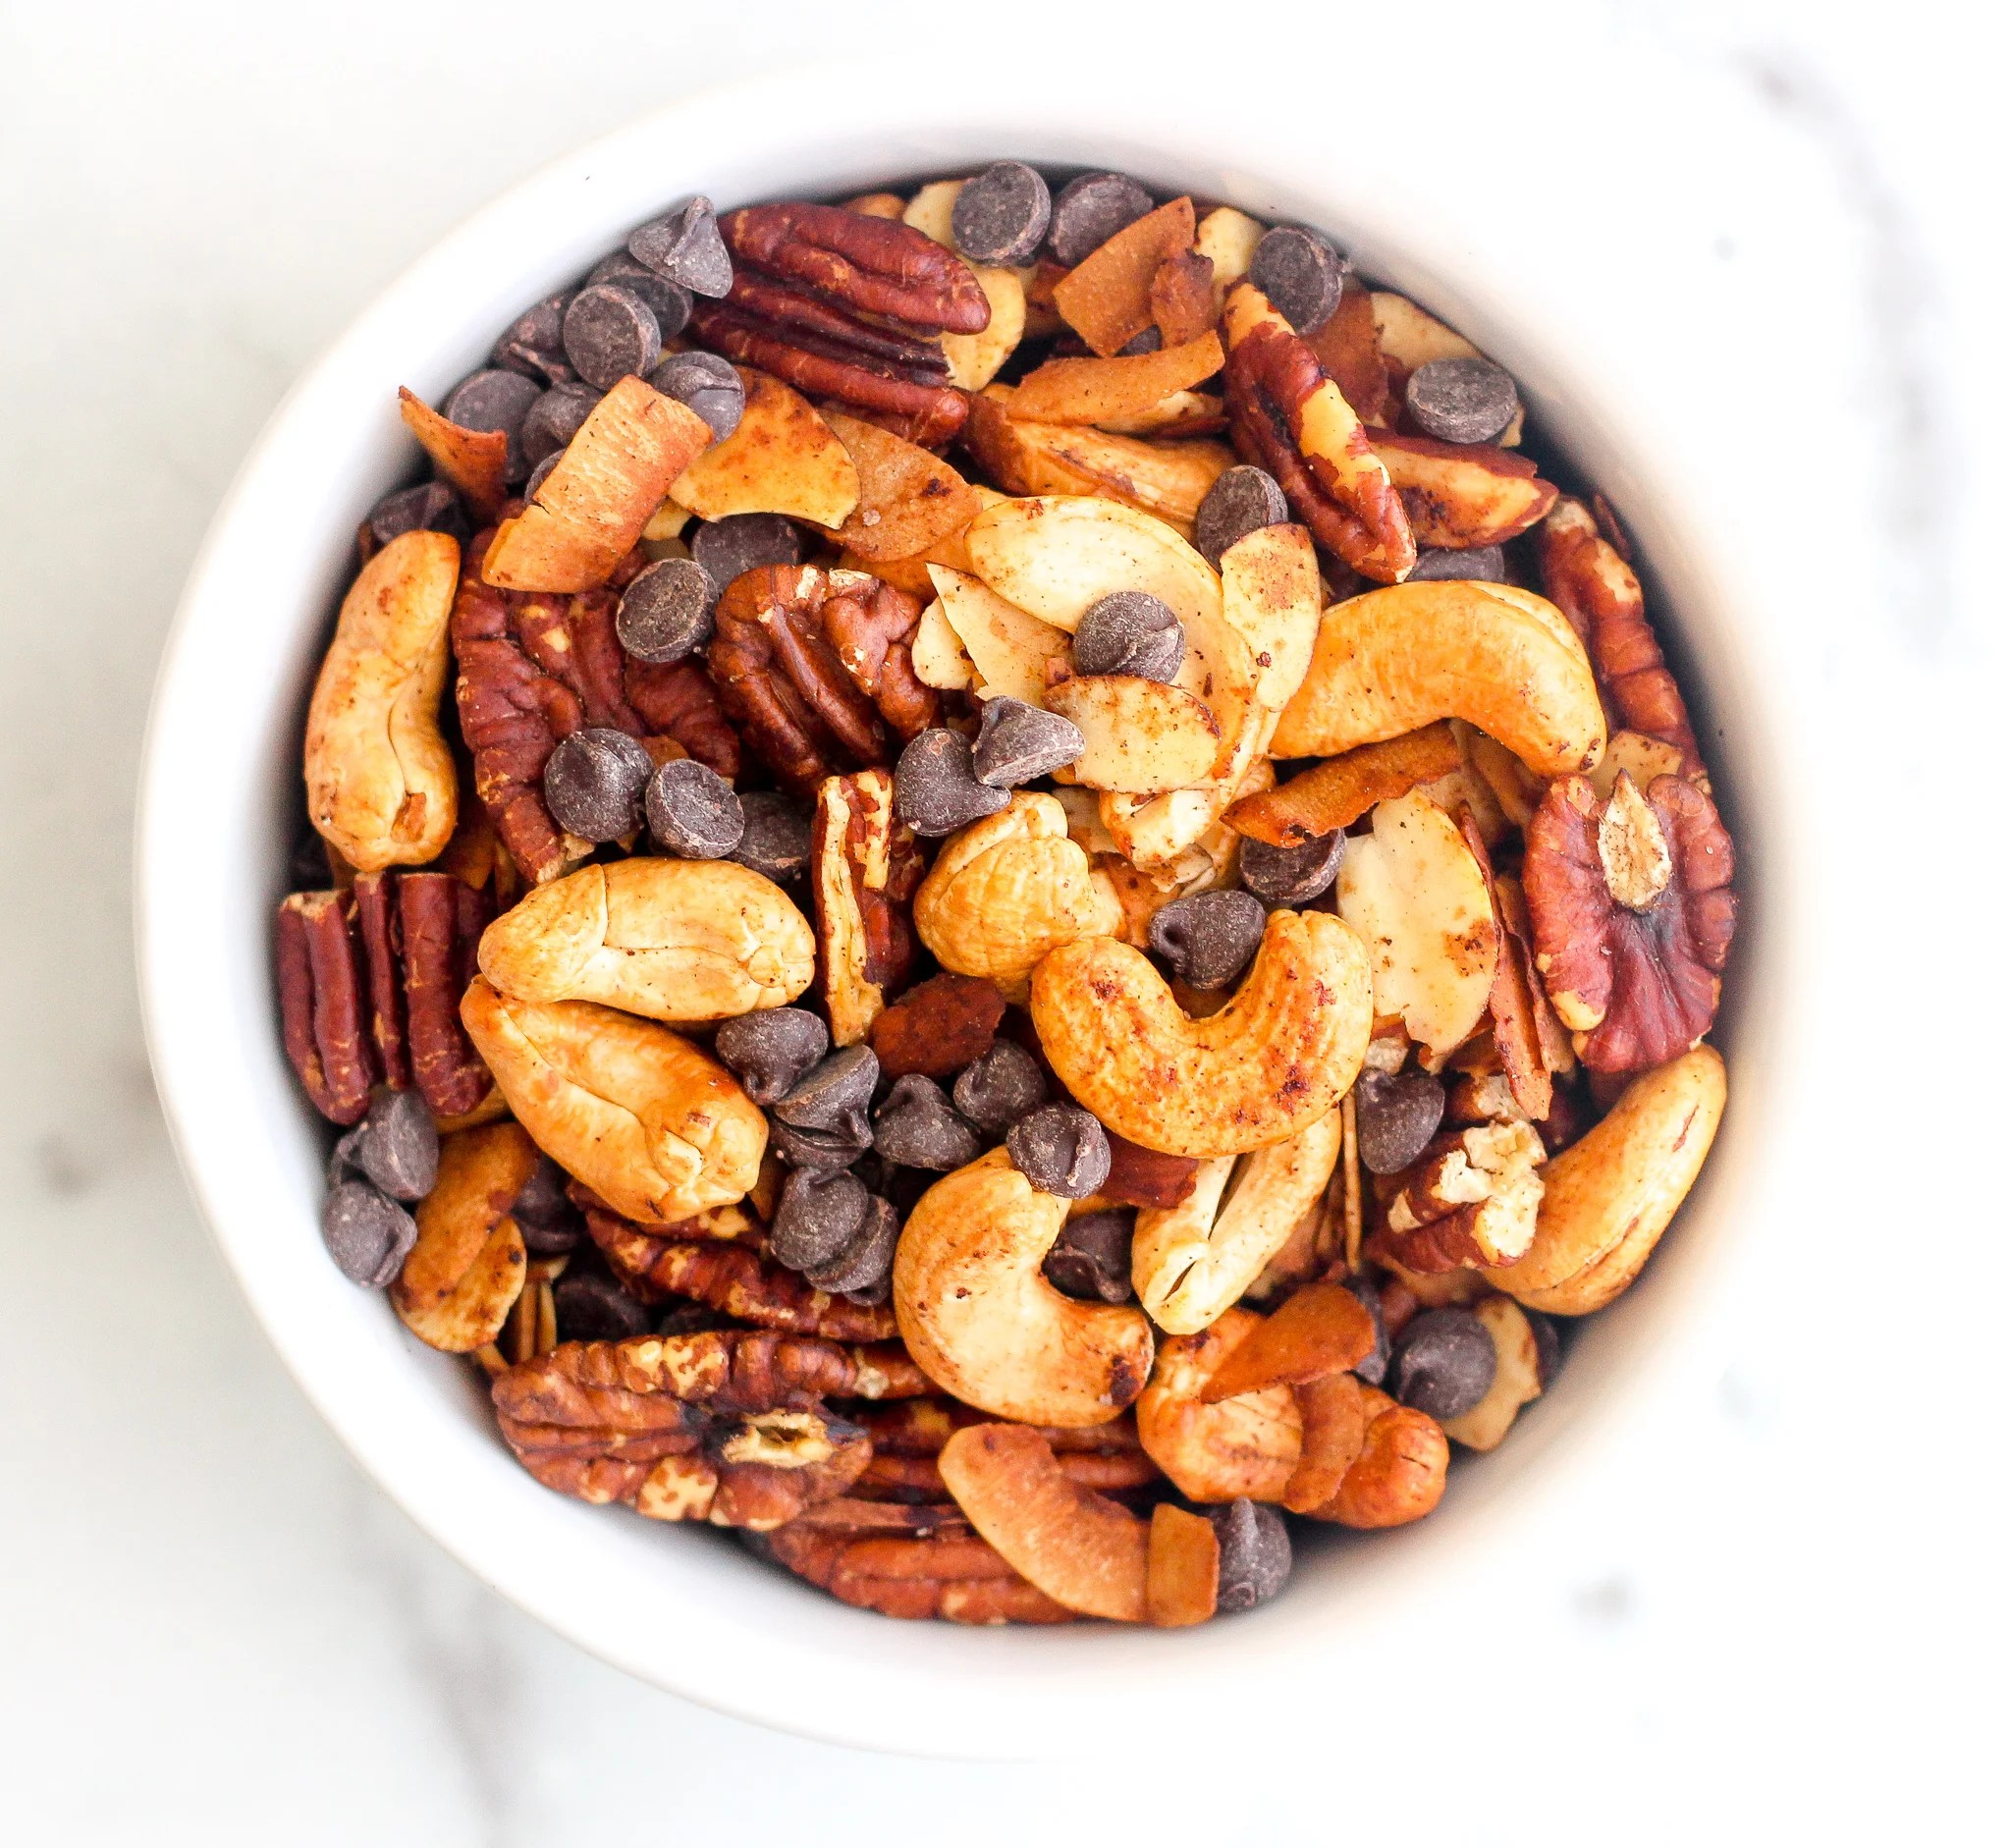 Keto trail mix in a white bowl with cashews, almonds, pecans, coconut flakes and sugar free chocolate chips